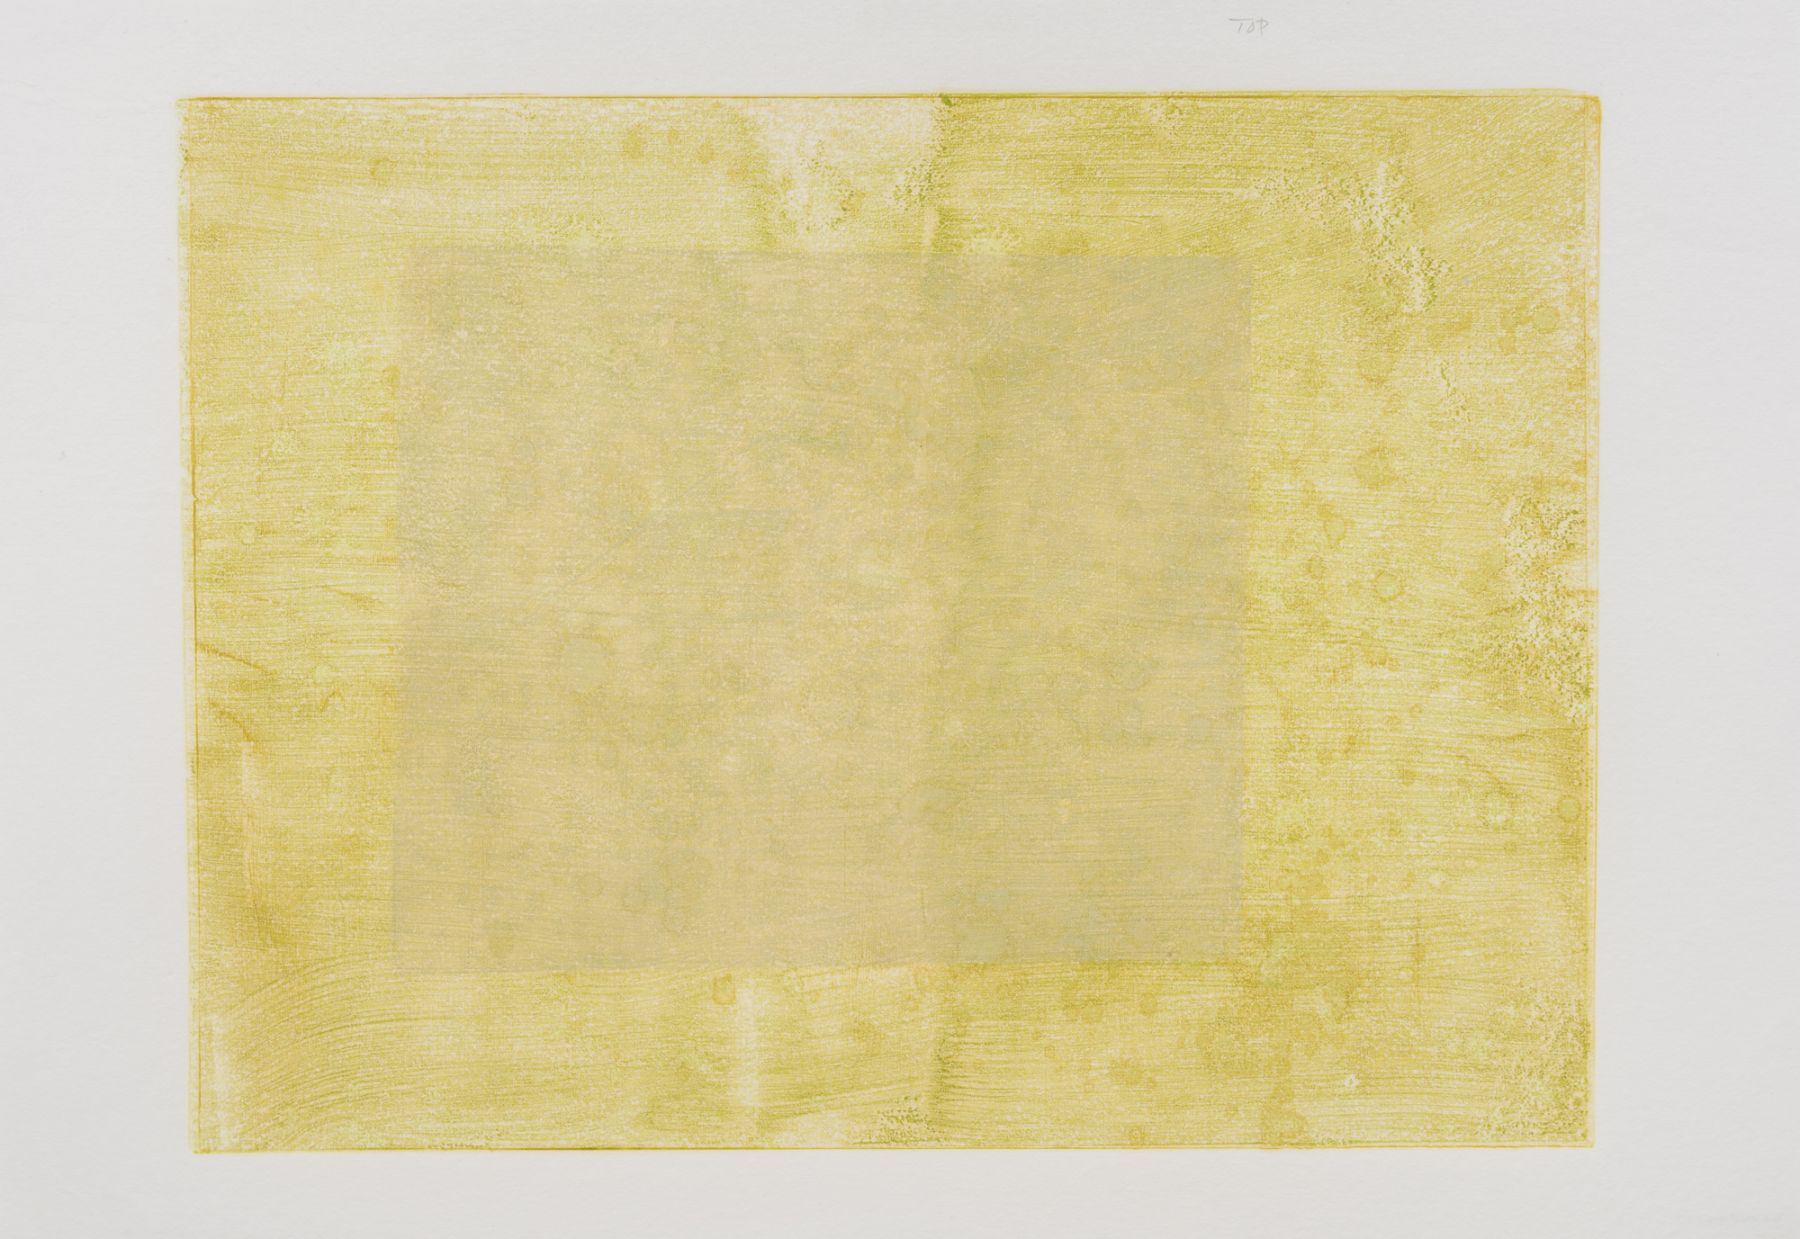 Felrath Hines , Untitled, 1982 , Monotype,  18 x 24 inches. Organic and natural yellow monotype with a tan square within a yellow rectangle. Felrath Hines worked to create universal visual idioms from a place of complex personal experience. His figurative and cubist-style artwork morphed into soft-edged organic abstracts as he grappled with hues in his chosen oil medium.